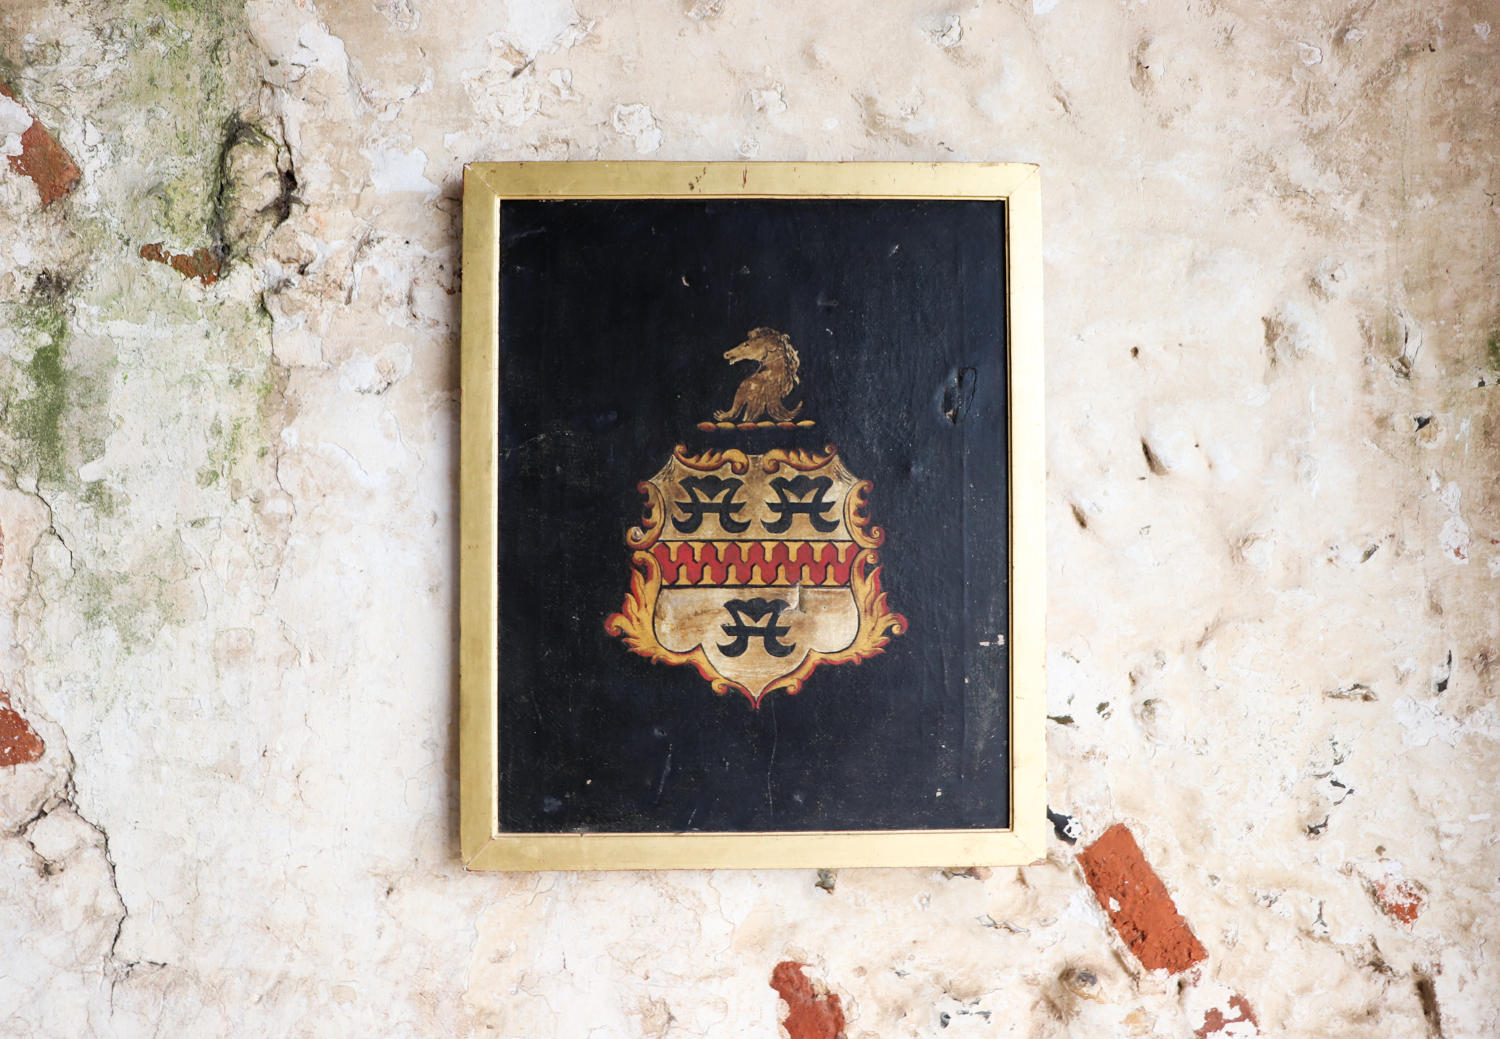 19th century framed crest on canvas